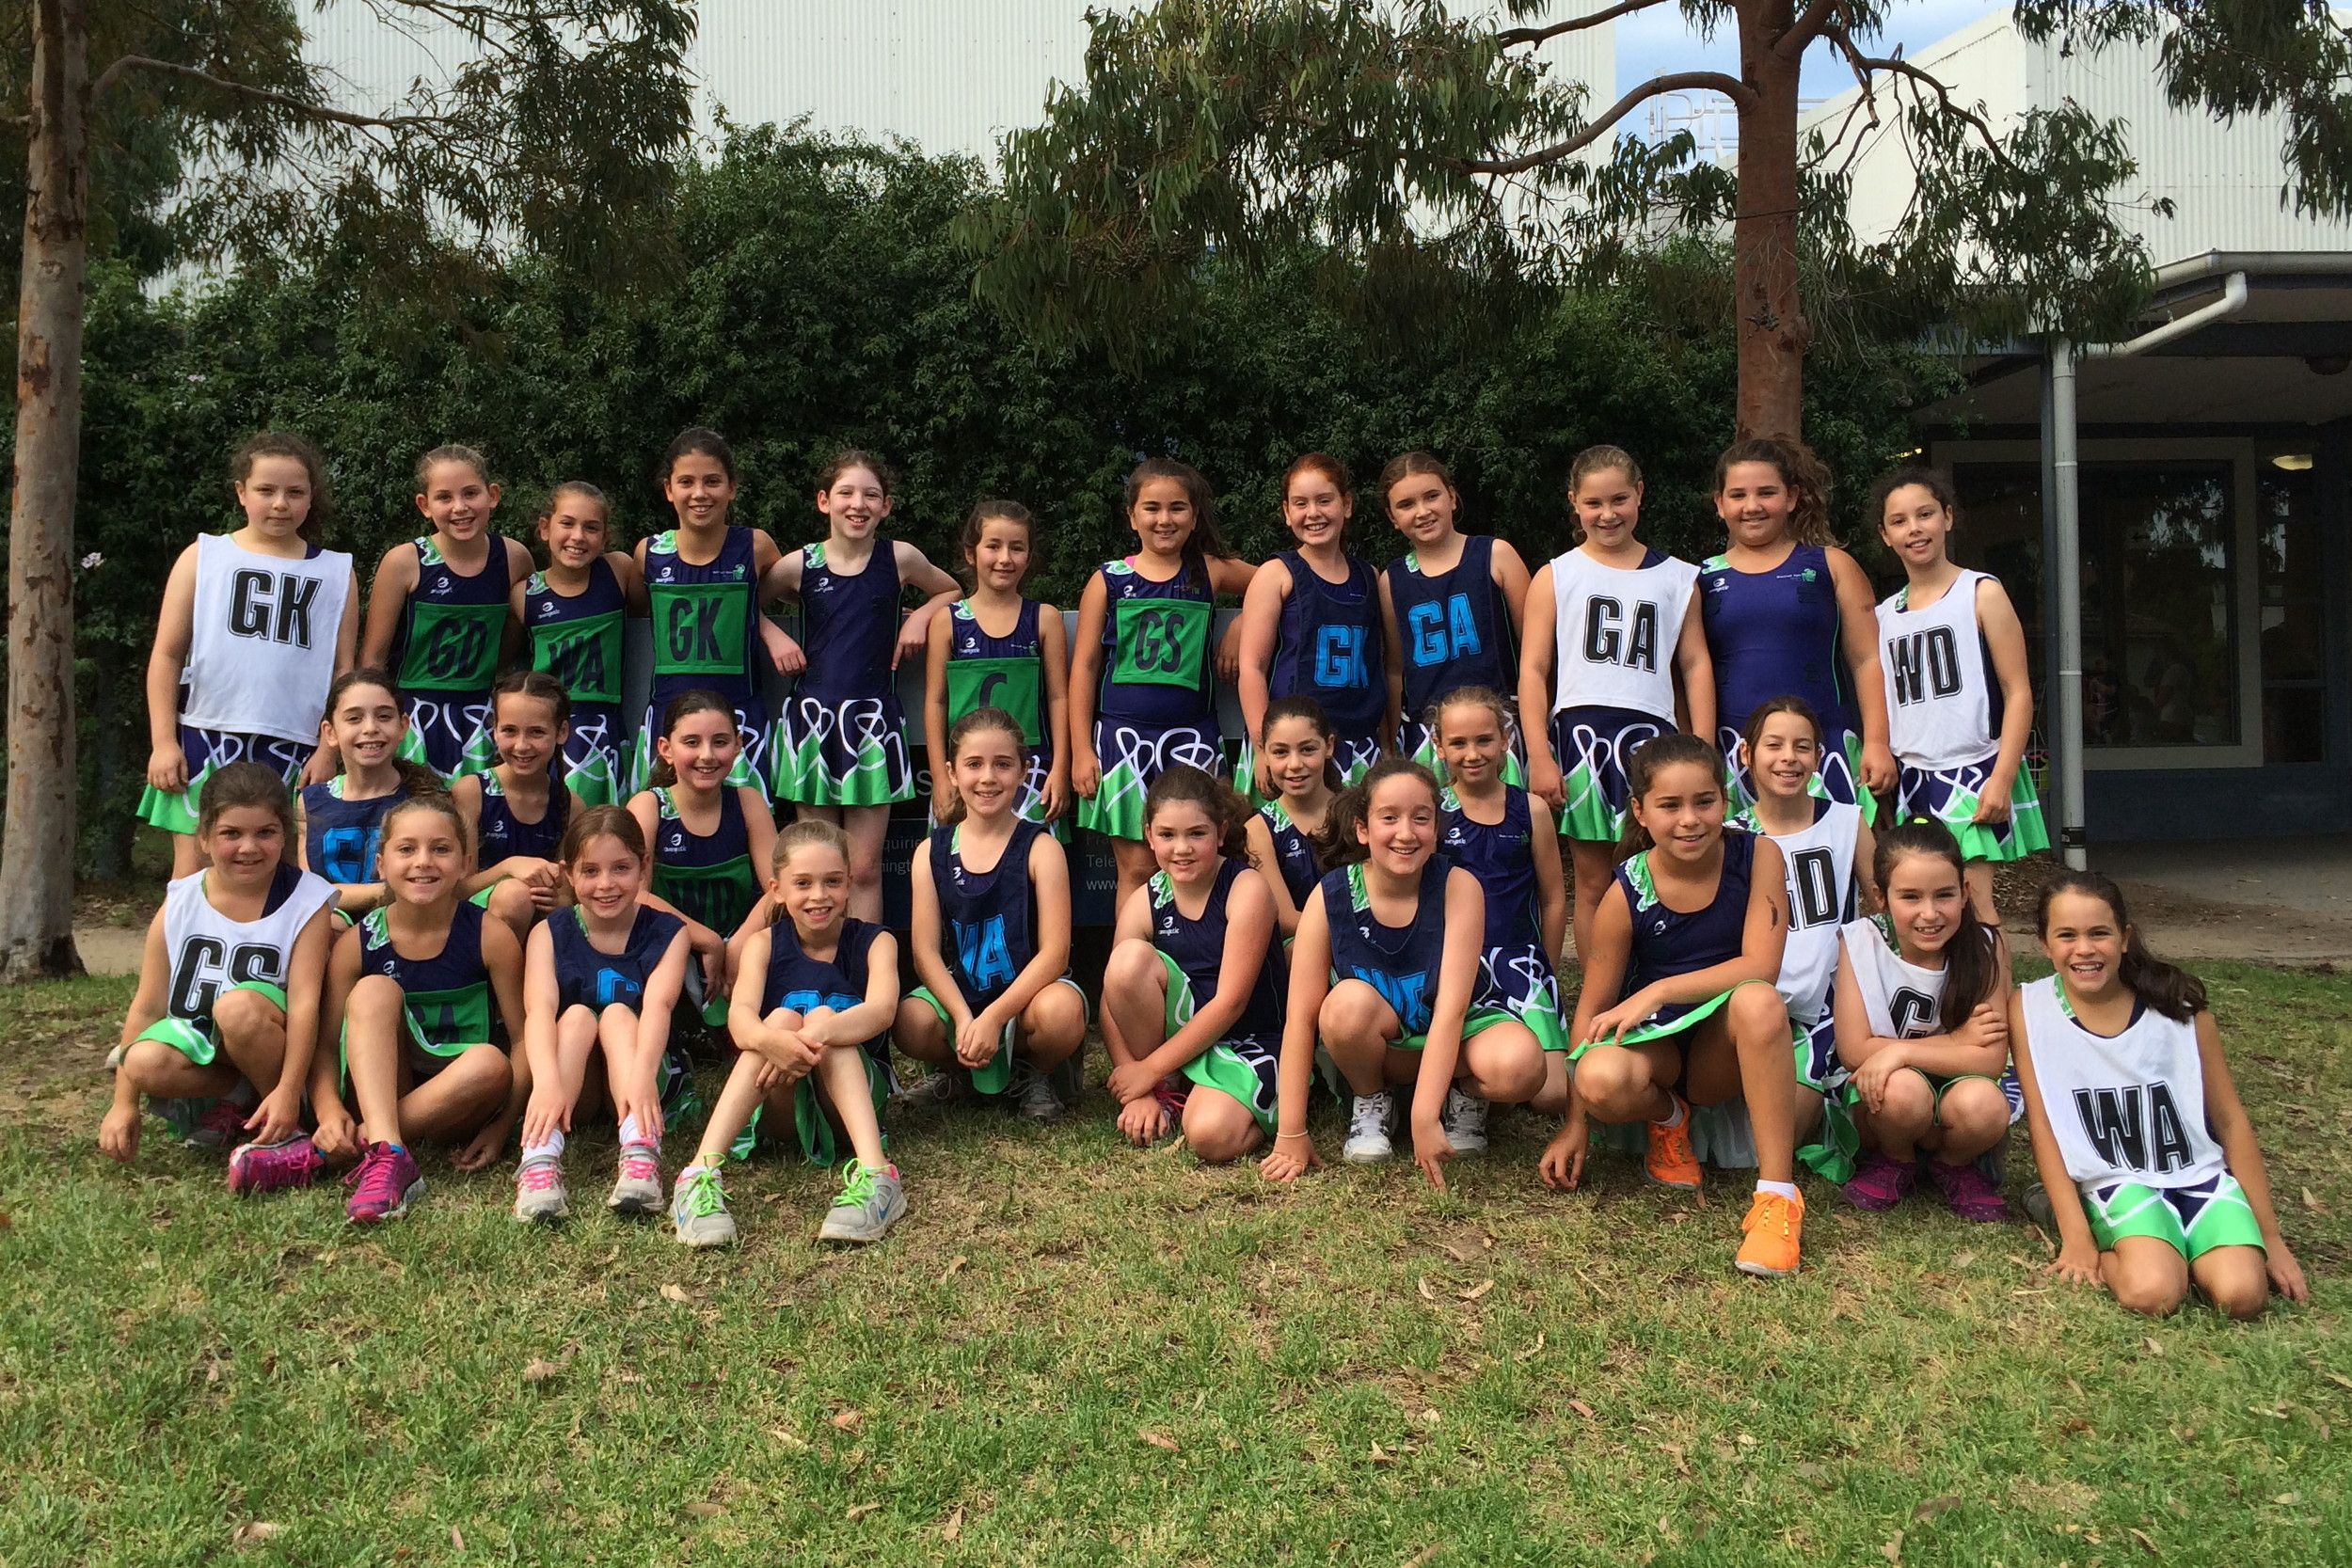 Maccabi under 11 teams together for their first game of 2015